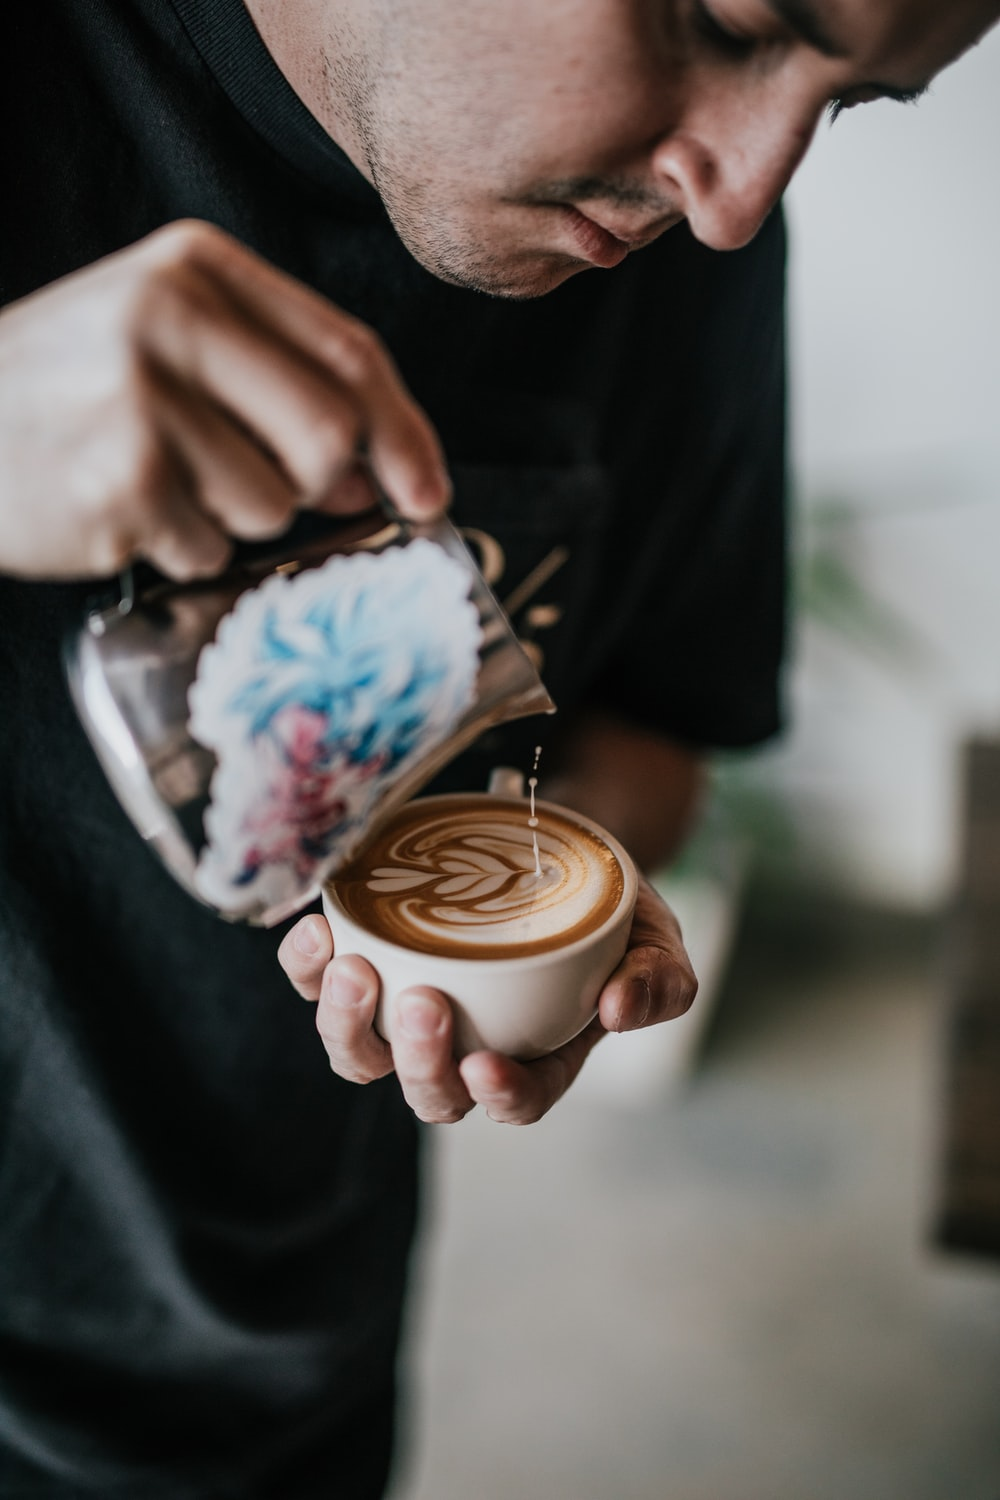 person holding mug and making cappuccino